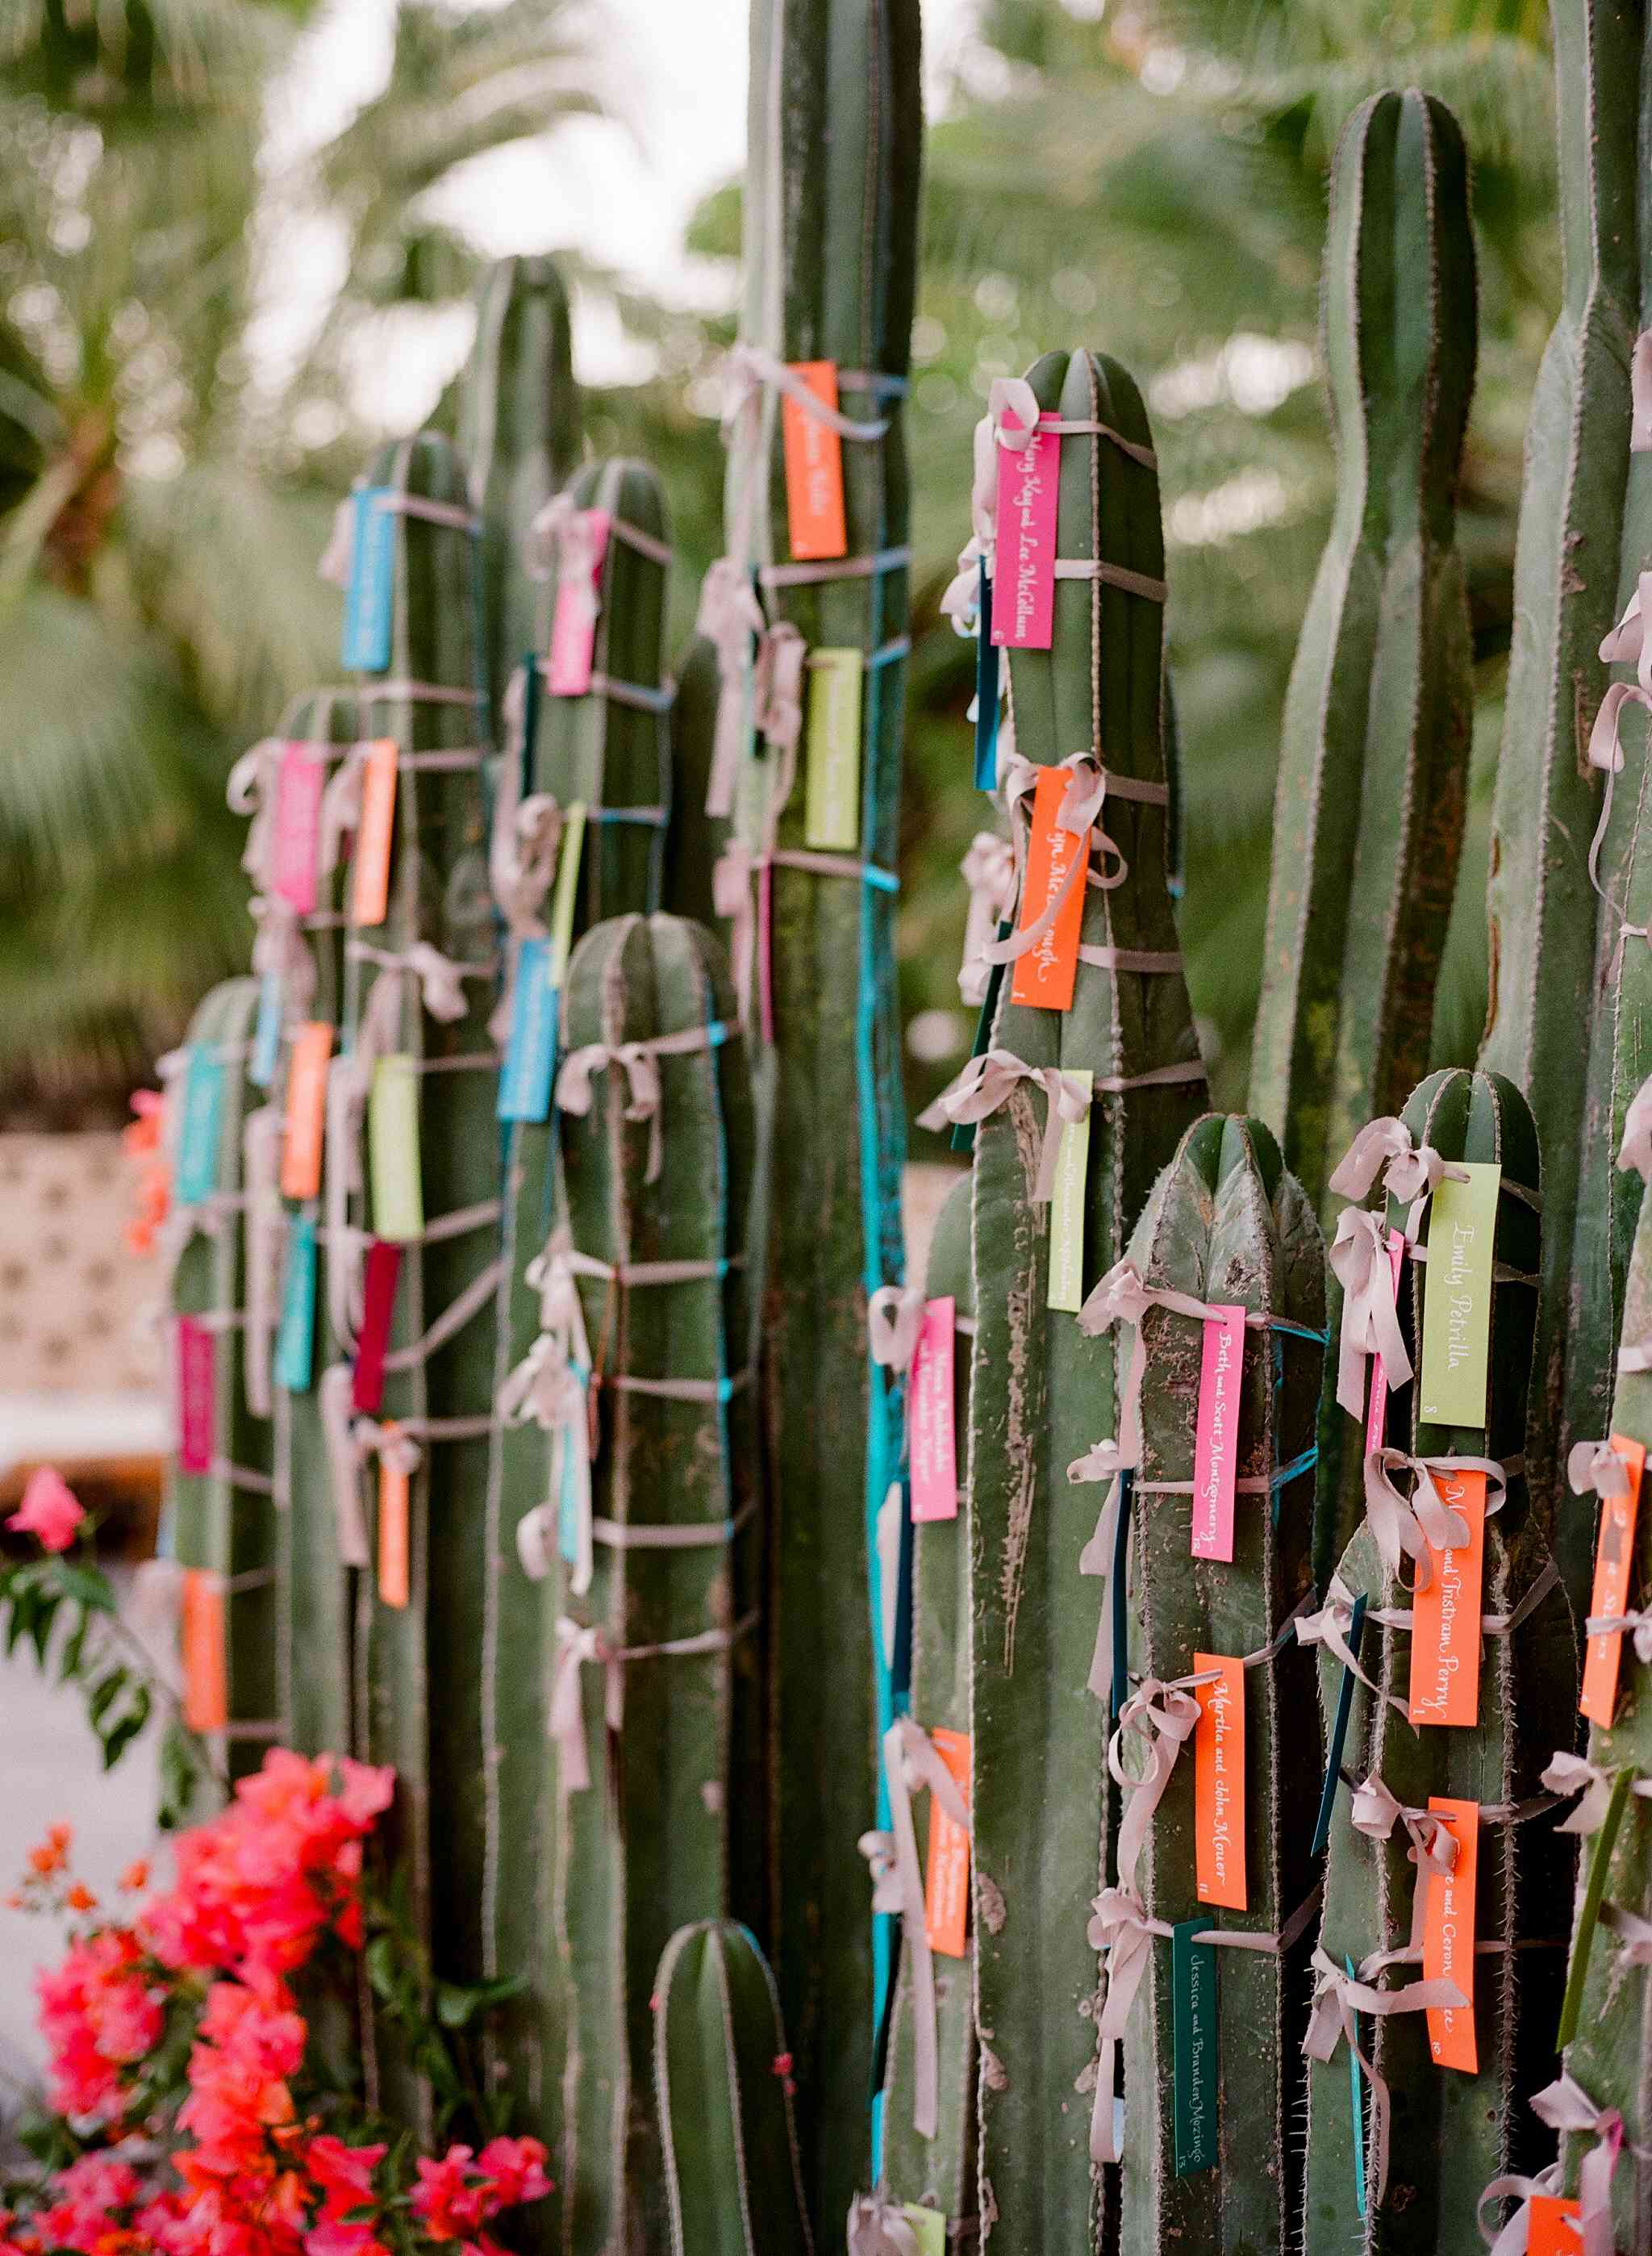 Colorful escort cards hung on cacti